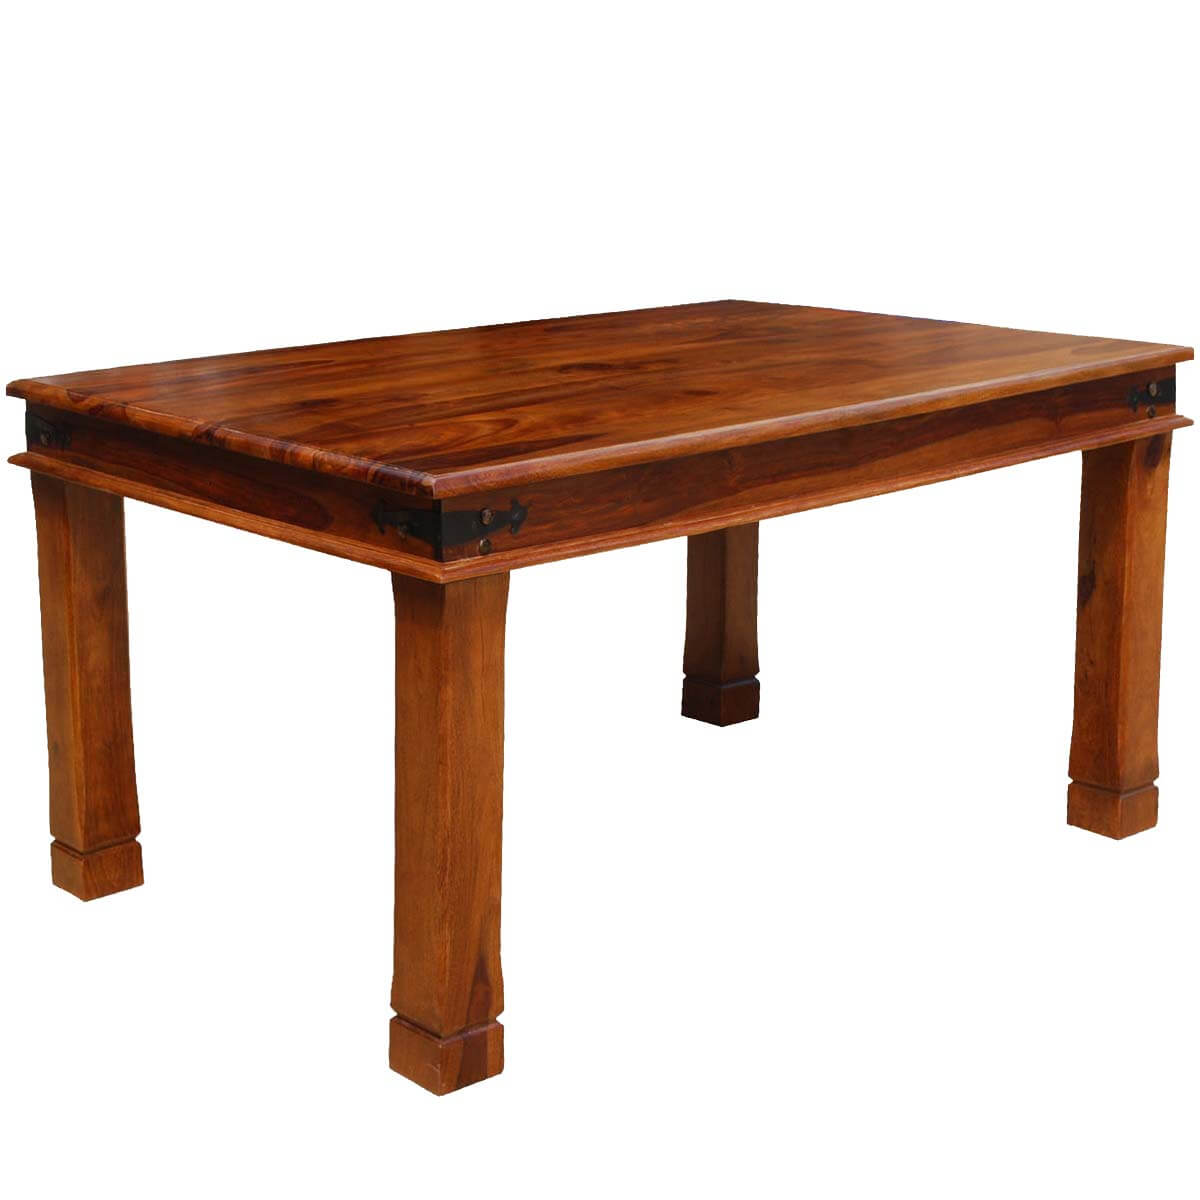 Fannin transitional solid wood double edge dining table for Hardwood dining table